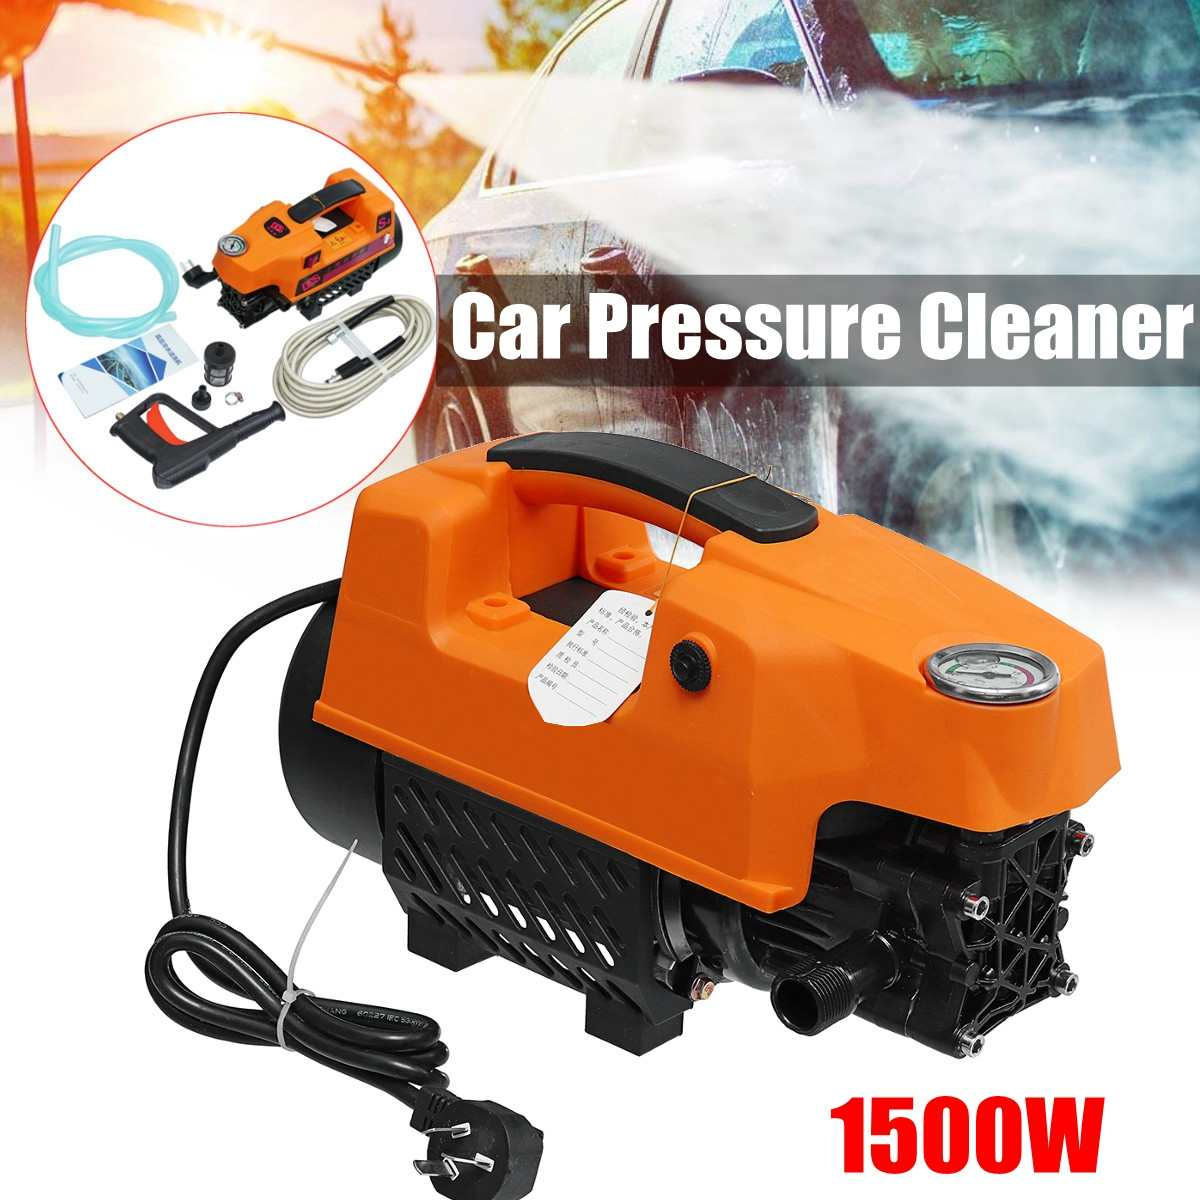 High Pressure Washer 1500W Portable Electric Car High Pressure Washing Cleaner Machine 220V 1300Psi Portable Car Washer no tax to russsia full automatic portable haimao high pressure car washer 220v household car washing machine